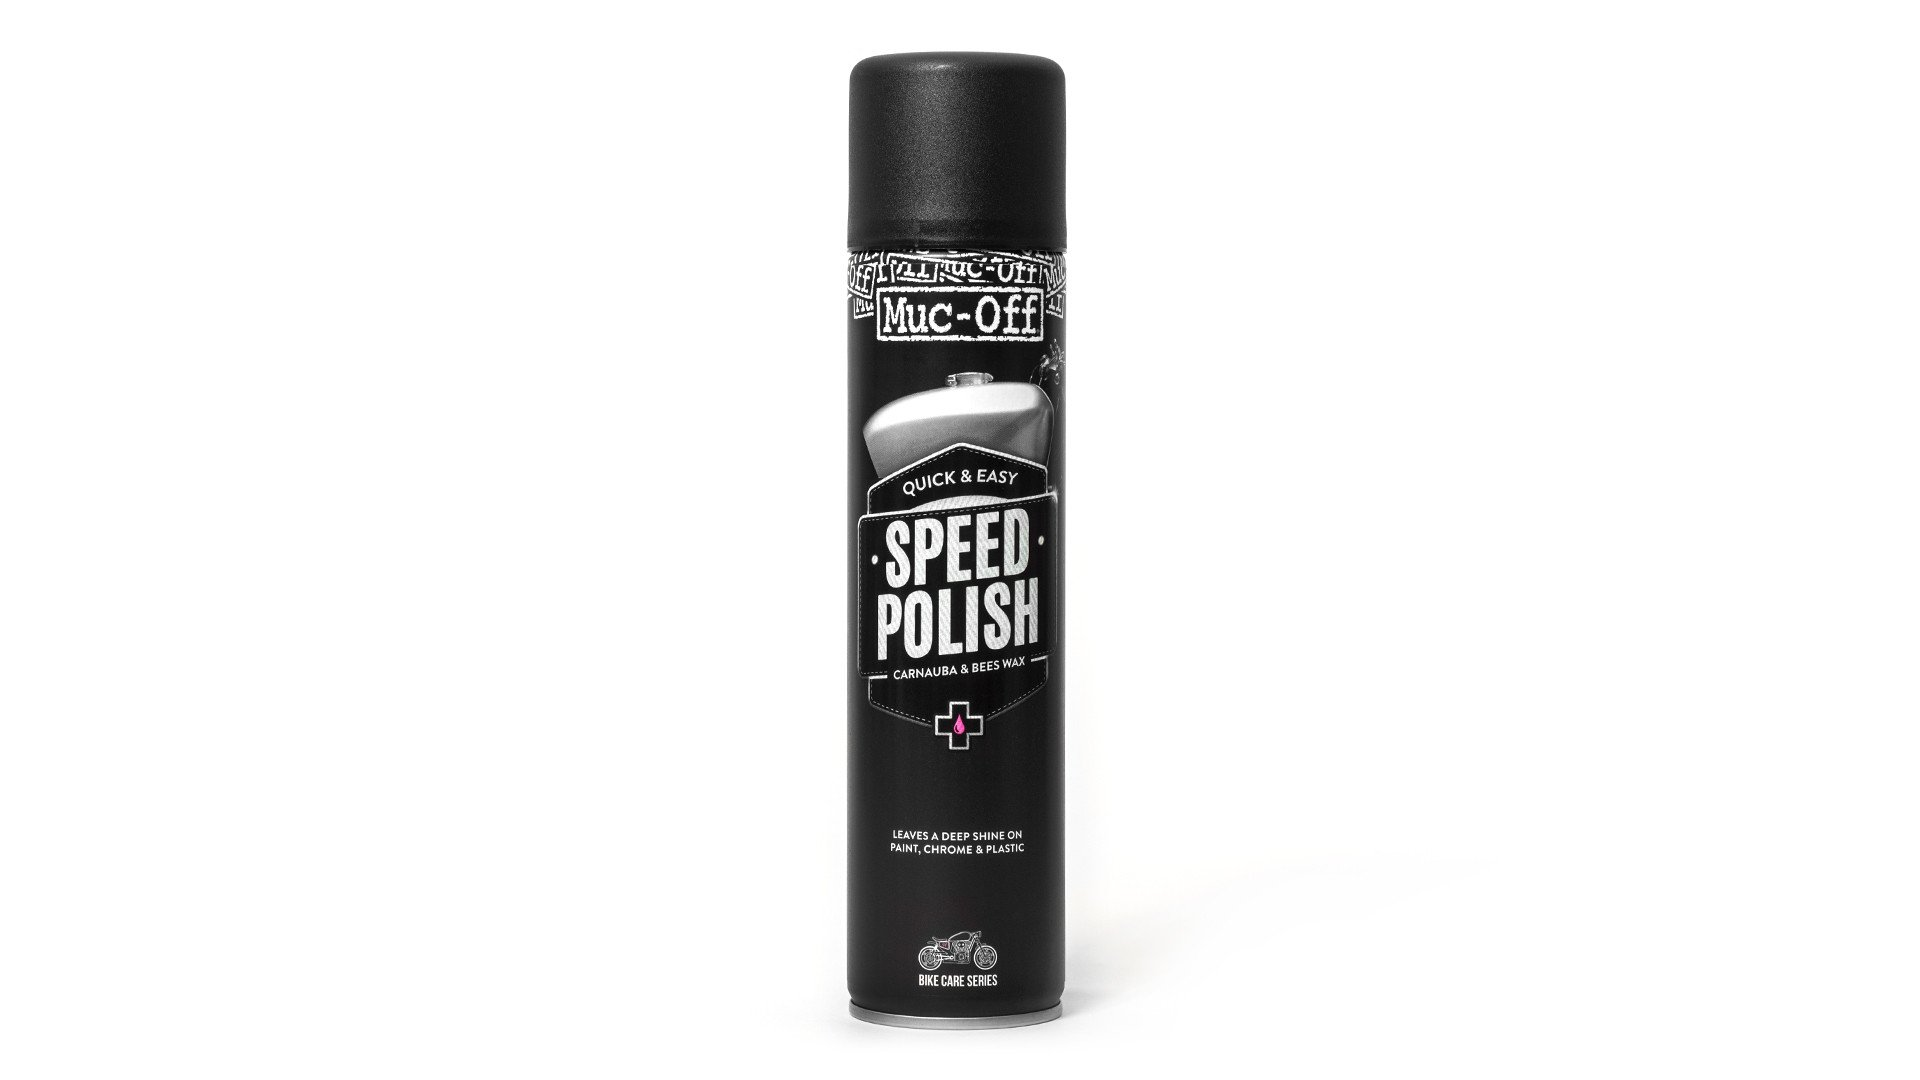 Muc-Off Speed Polish